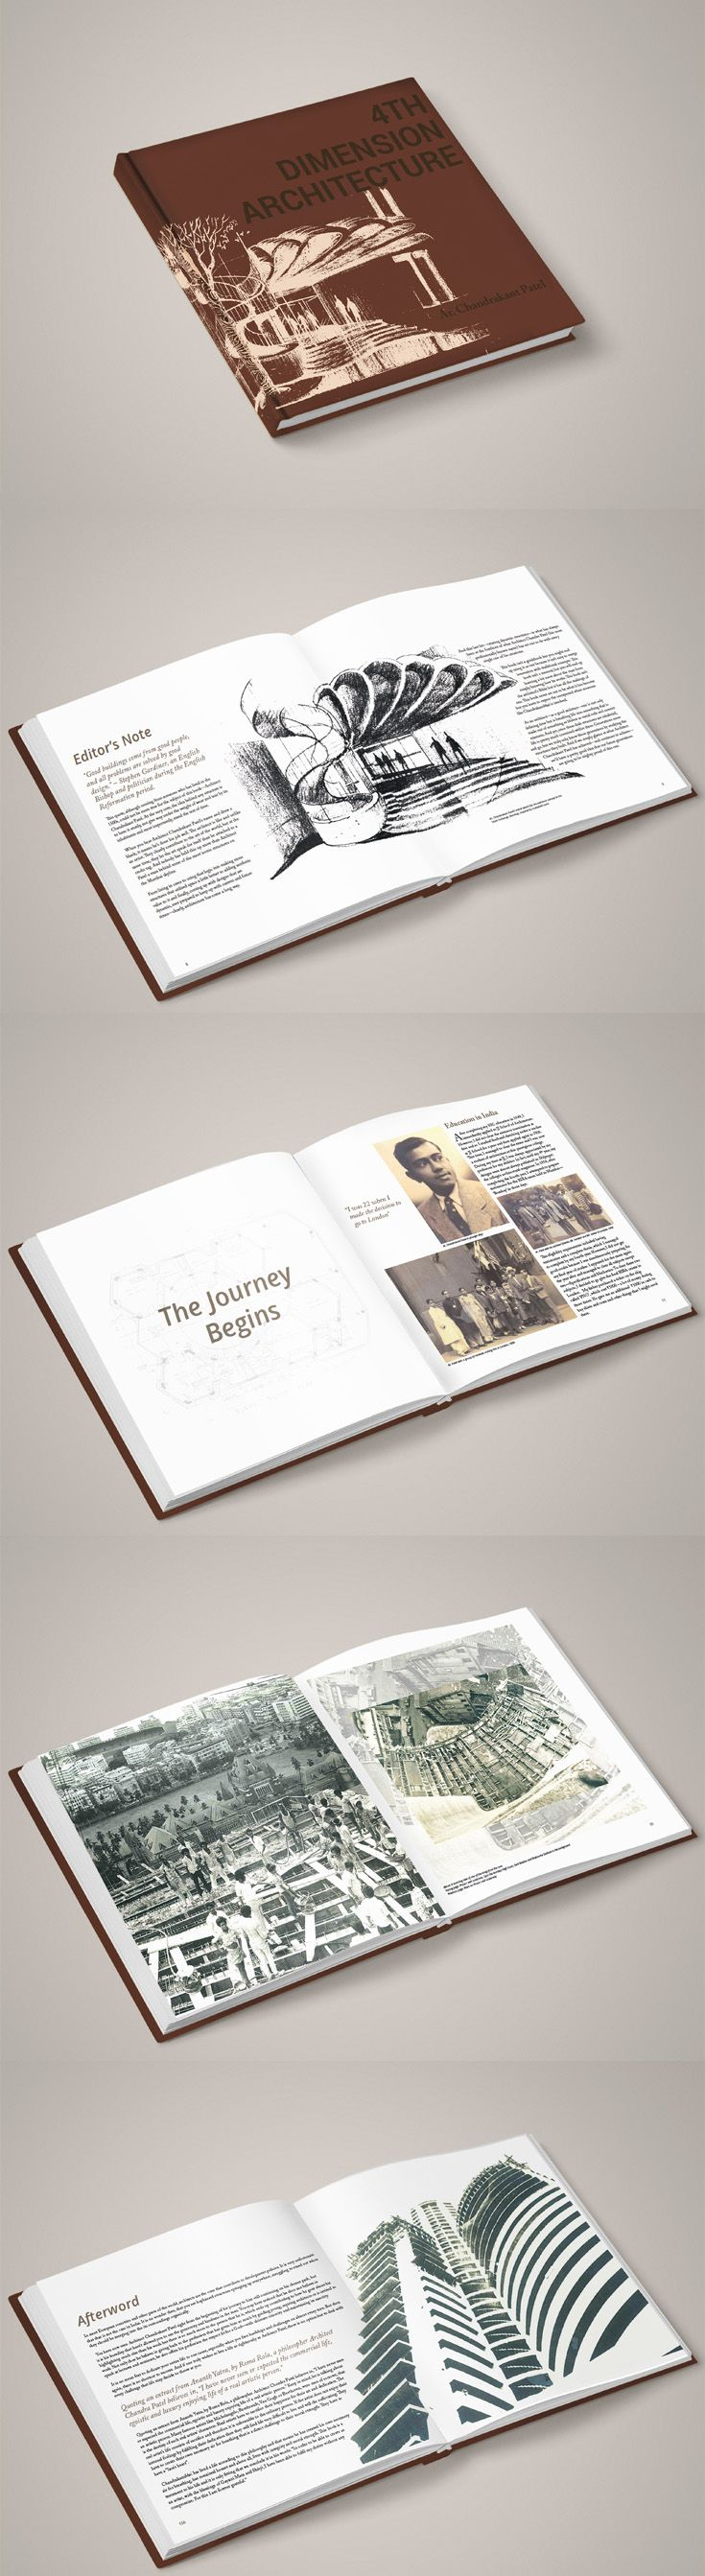 Layout for a Coffee Table Book based on an autobiography of an Architect